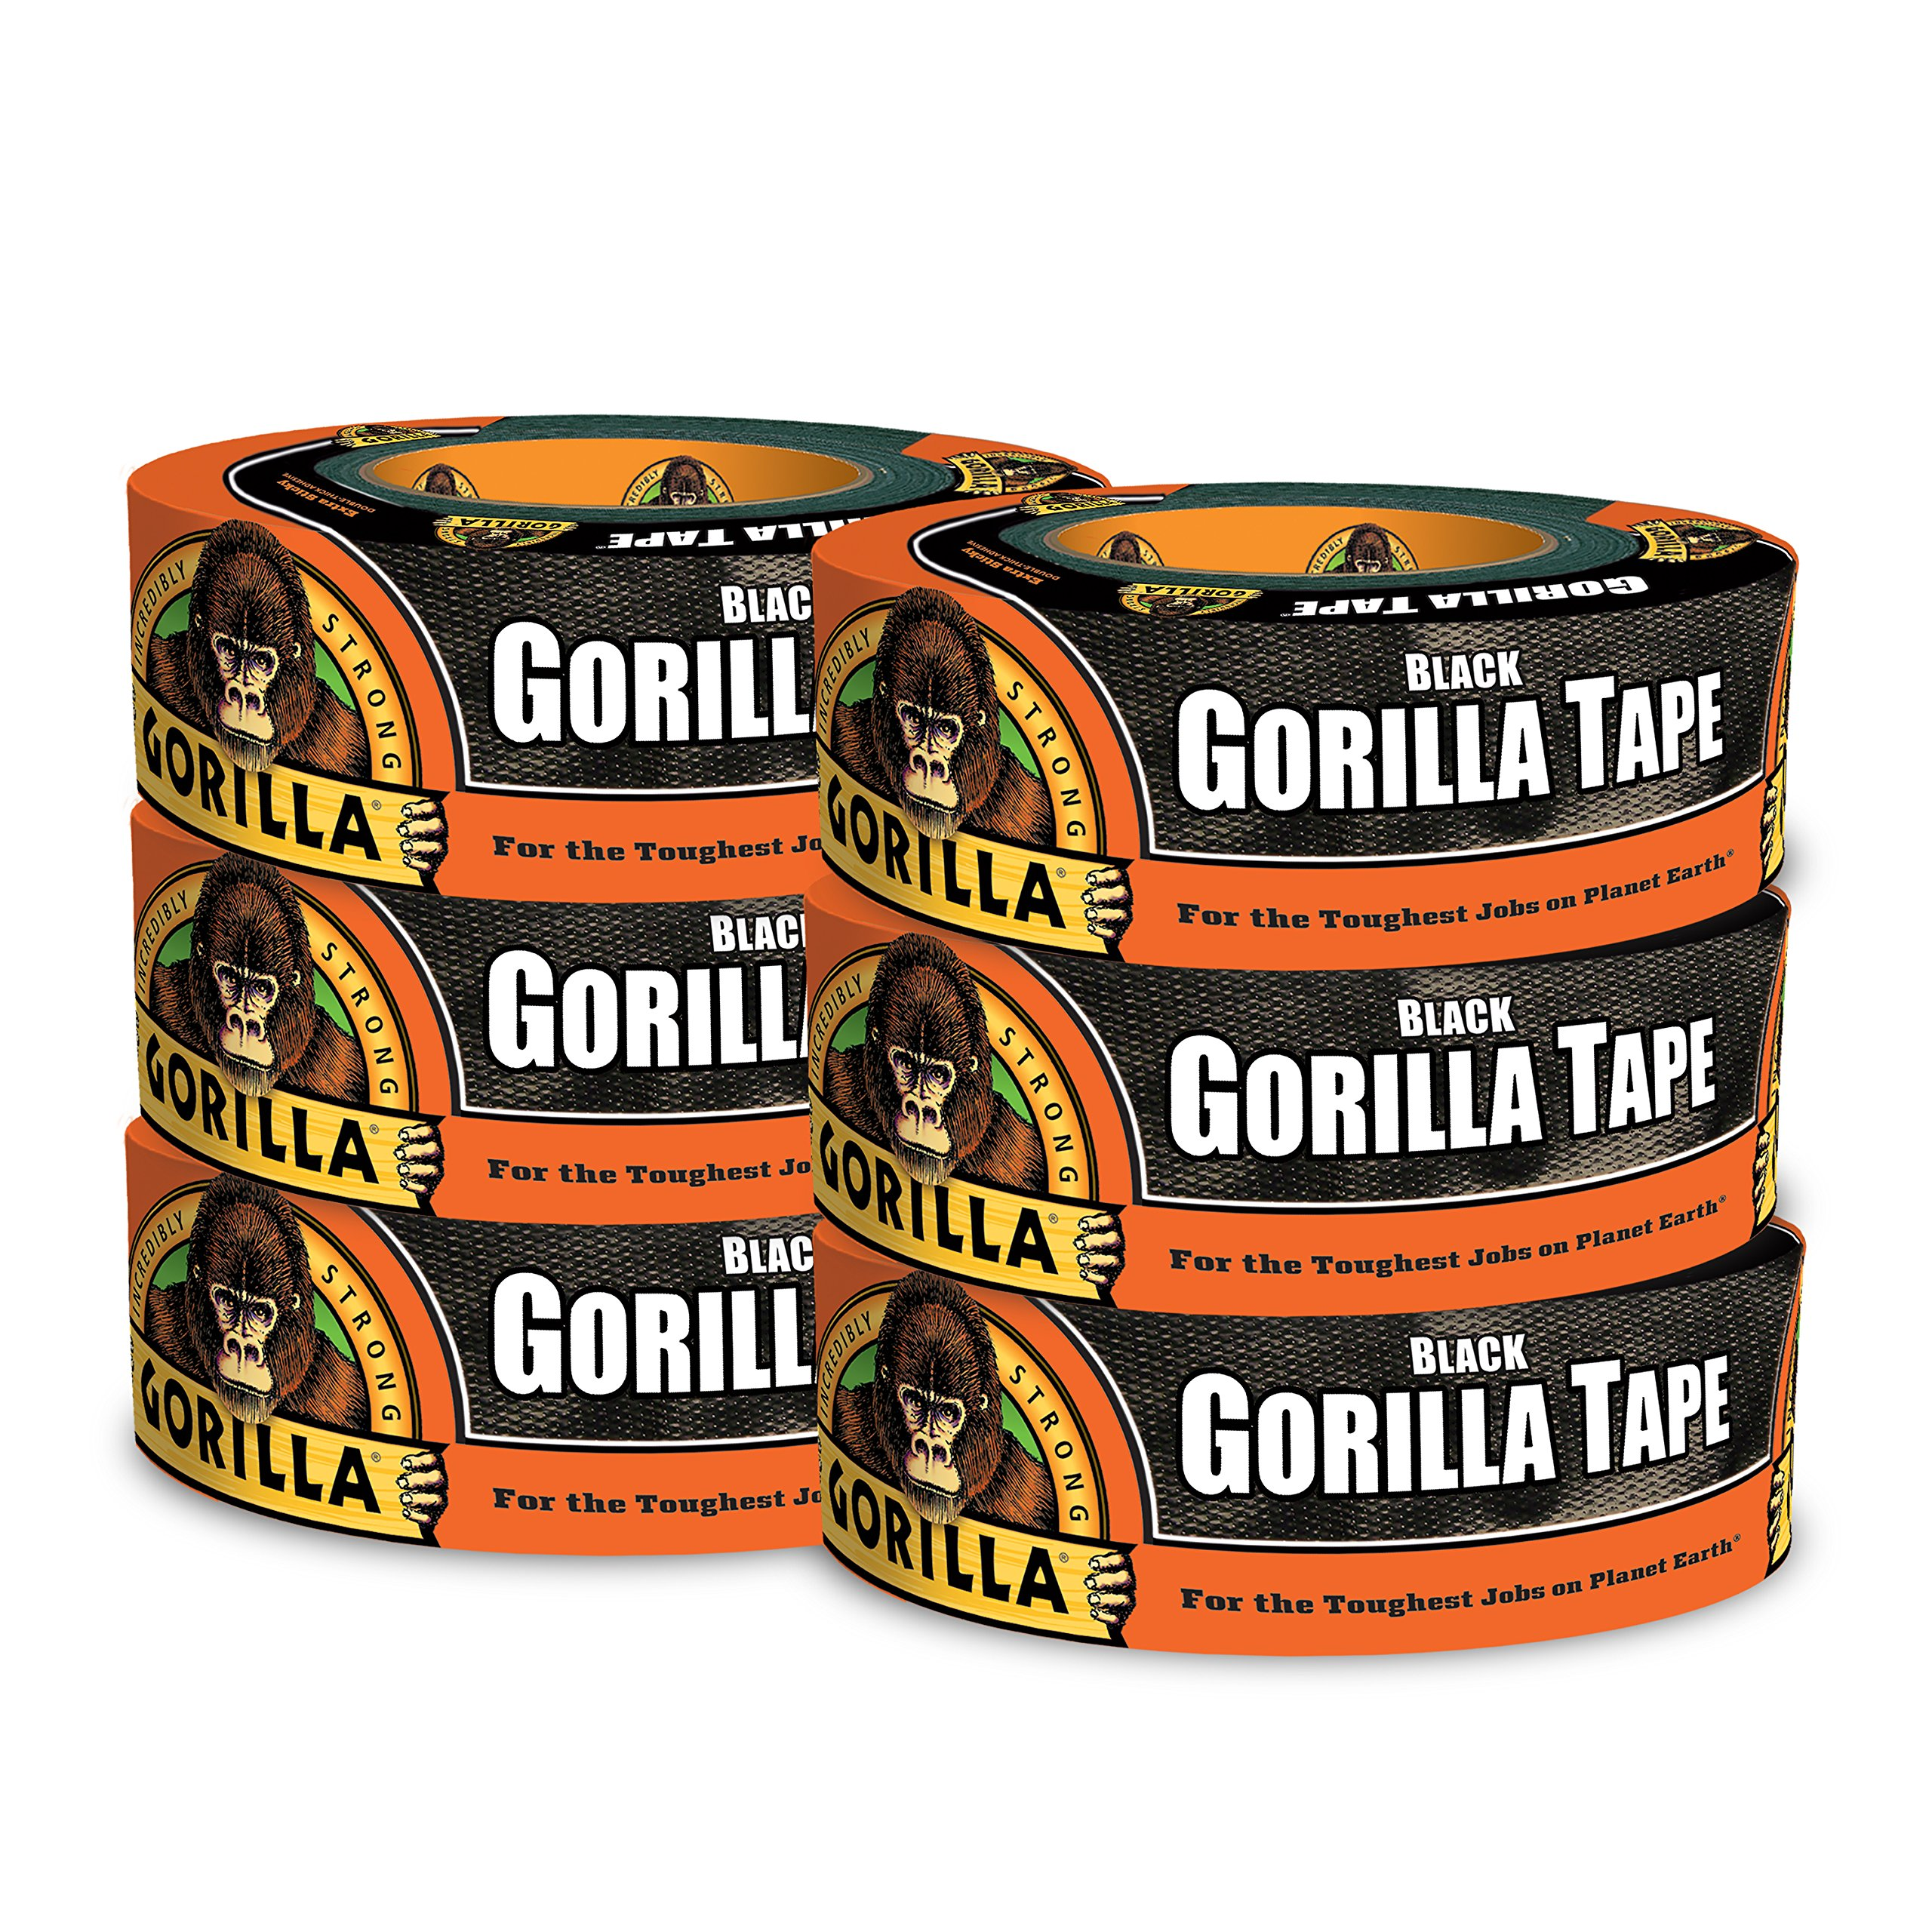 Gorilla Tape, Black Duct Tape, 1.88'' x 35 yd, Black, (Pack of 6) by Gorilla